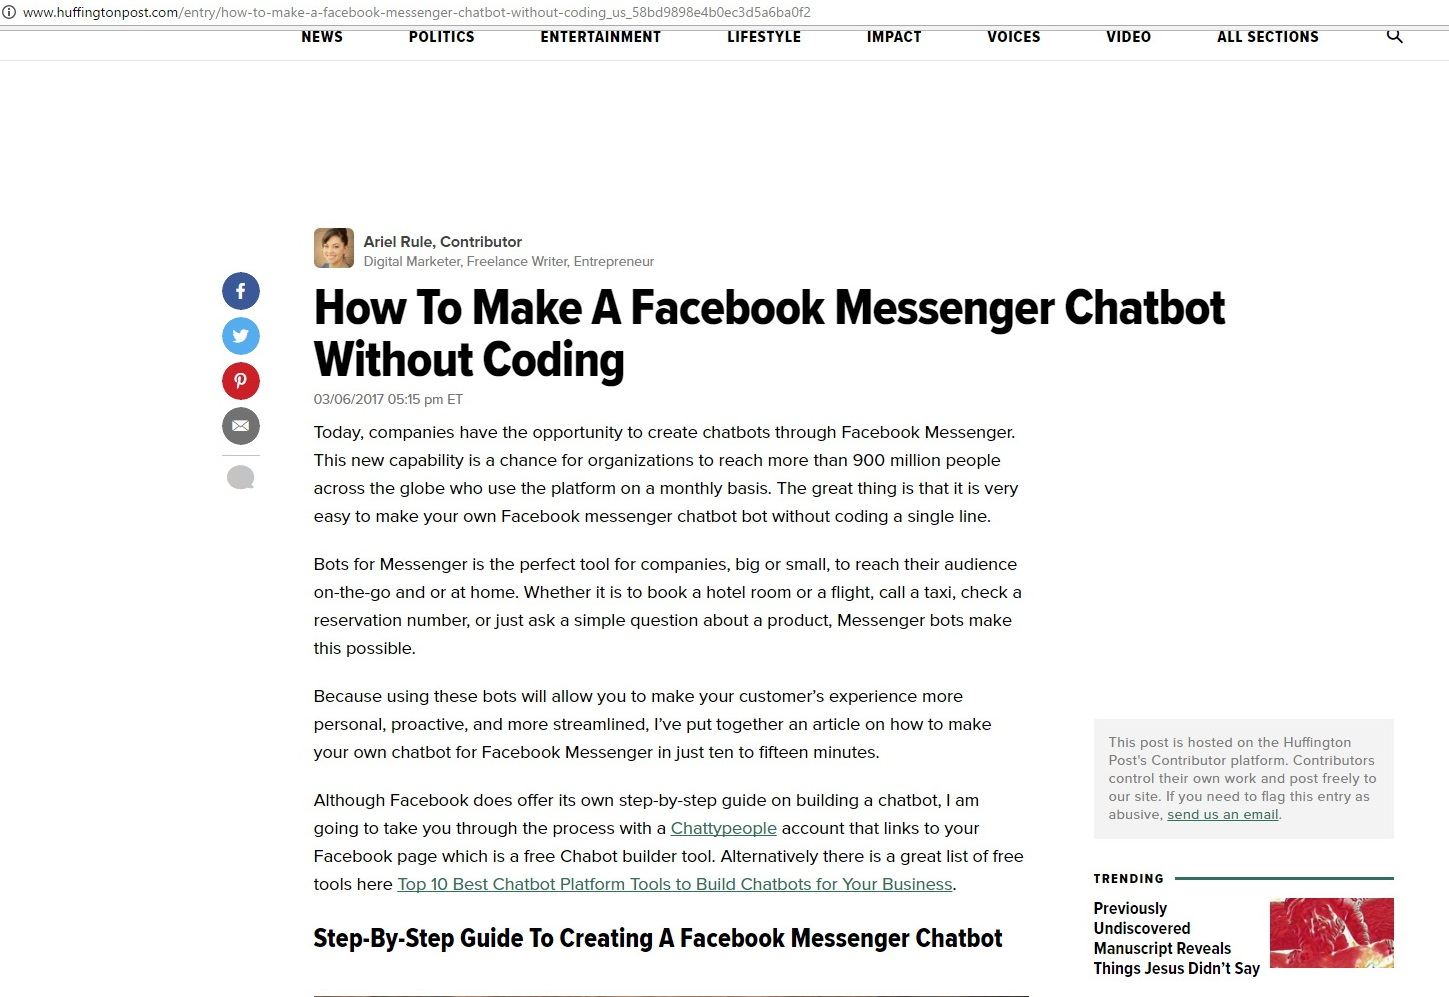 Make A Facebook Messenger Chatbot Without Coding | Murray